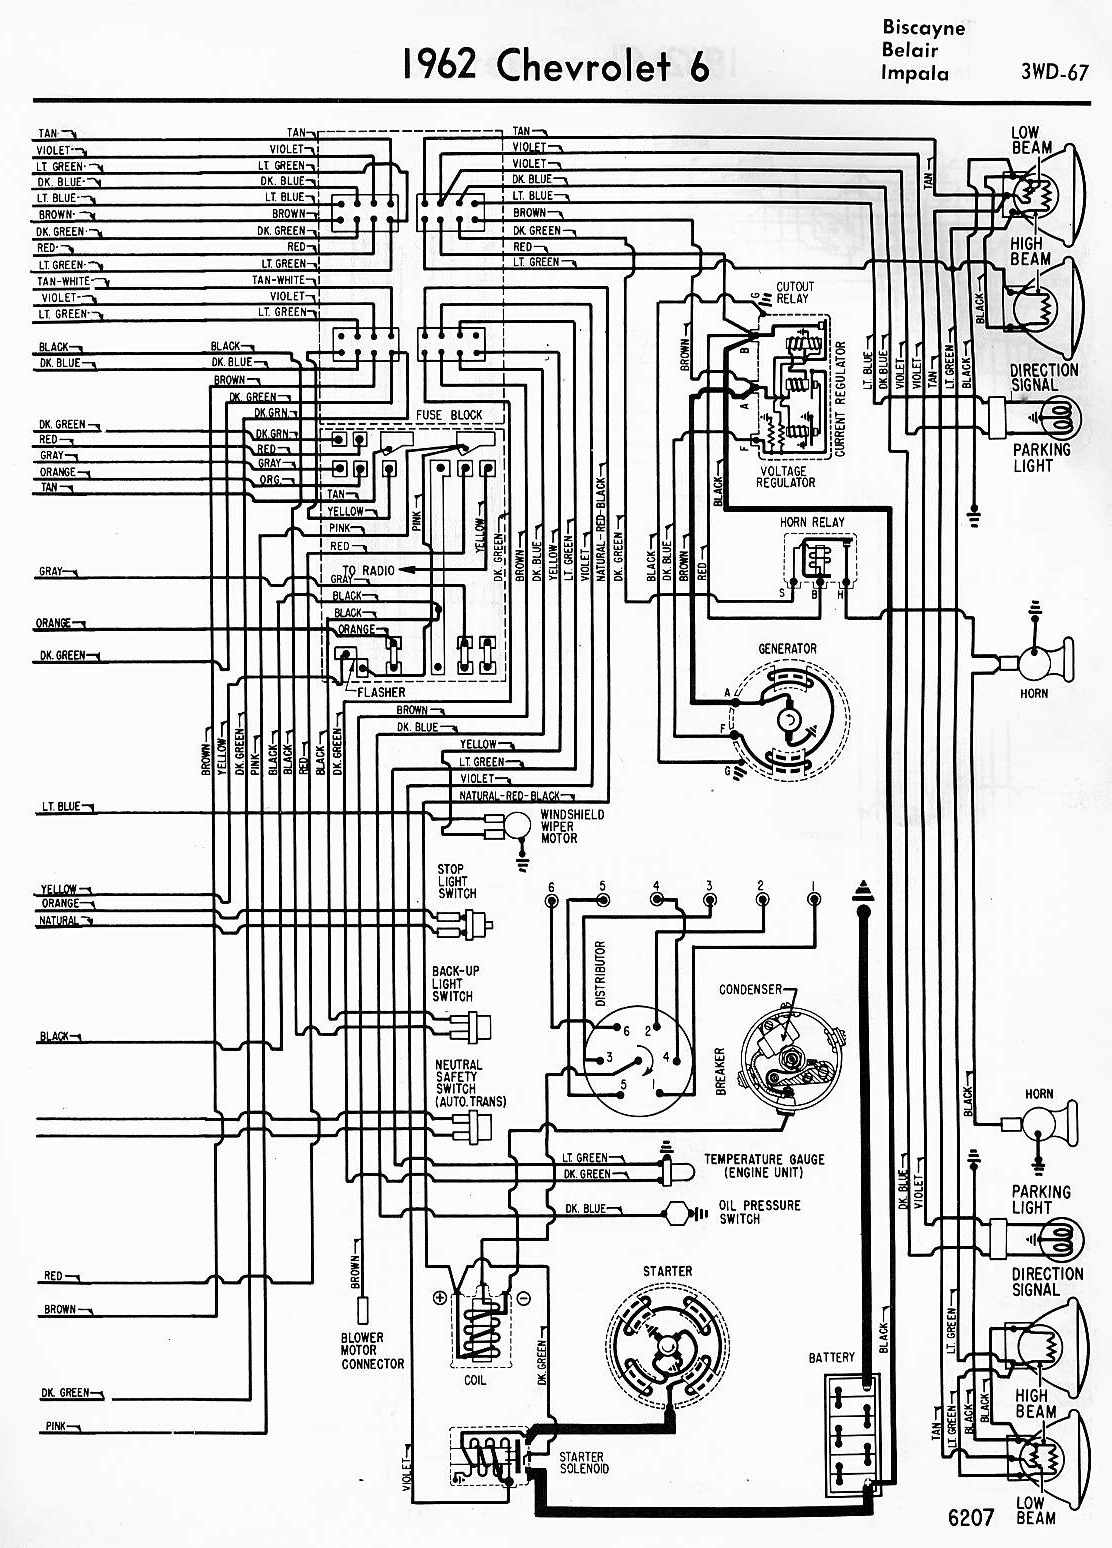 Electrical+Wiring+Diagram+Of+1964+Chevrolet+6 2011 impala wiring diagram 2005 impala ignition wiring diagram 1964 impala wiring diagram for ignition at webbmarketing.co